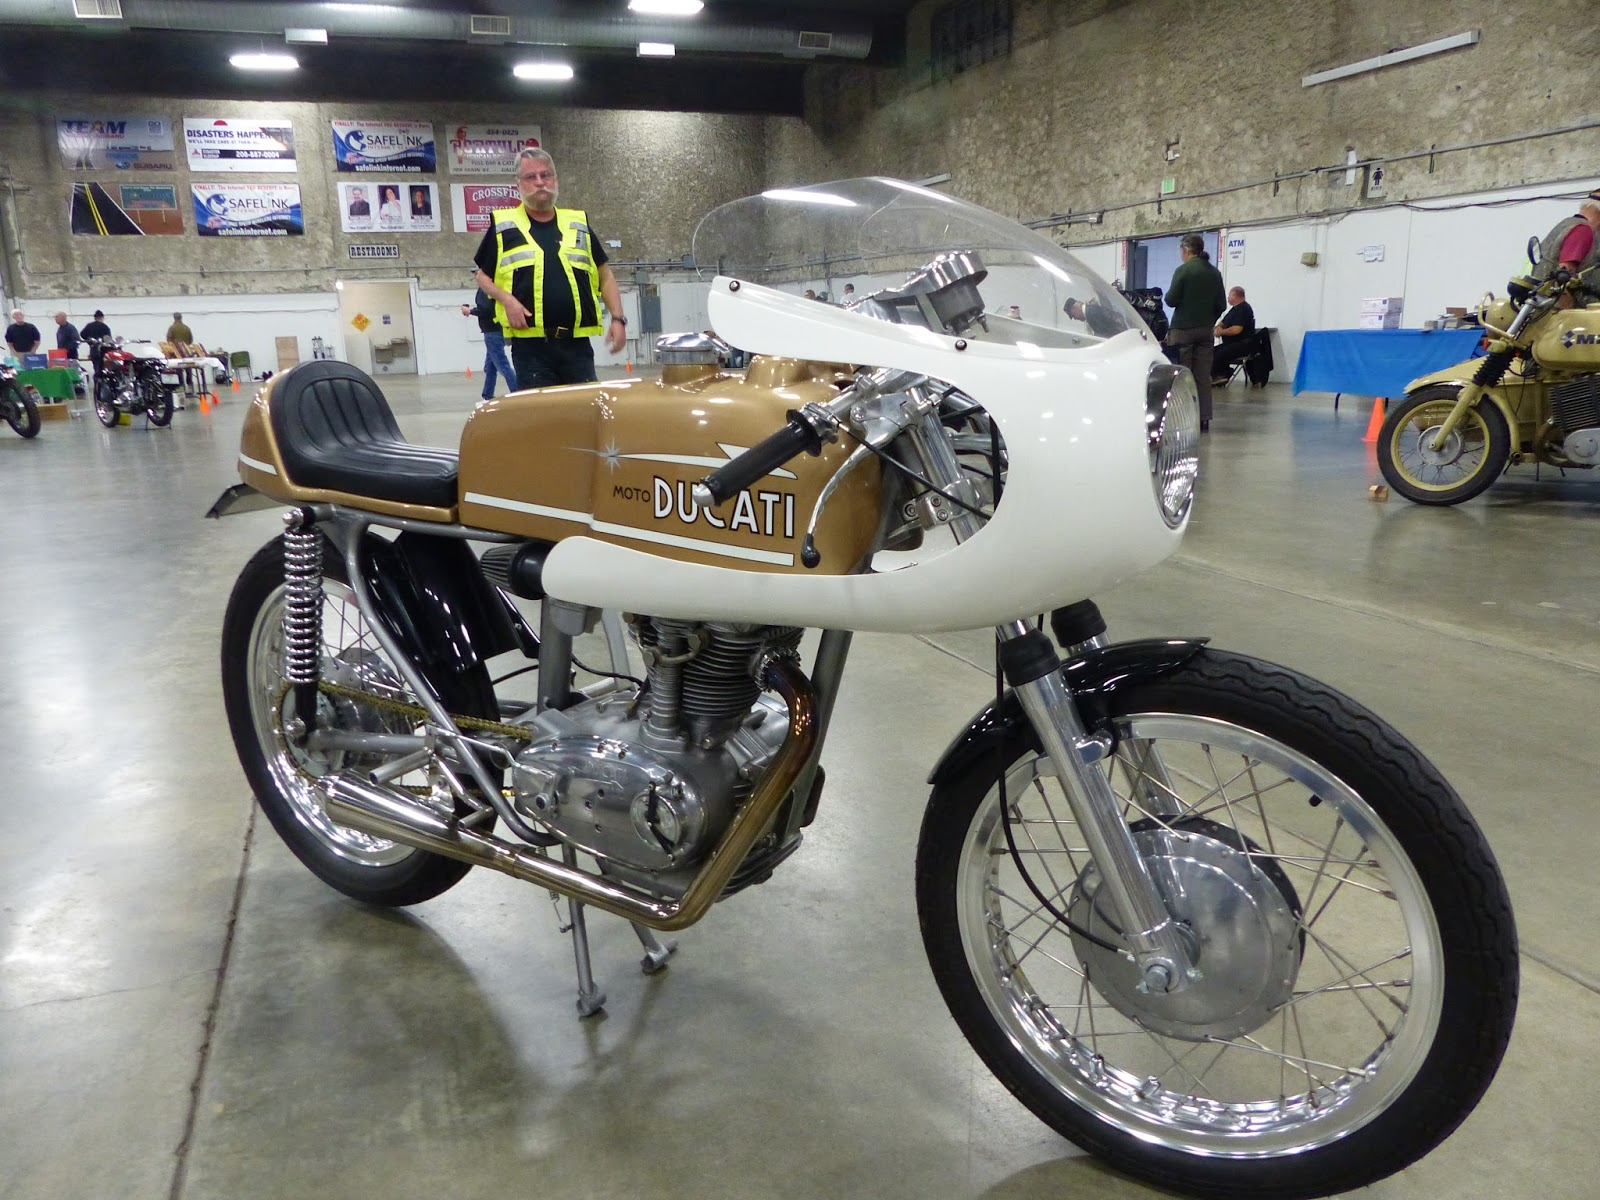 1965 Ducati 250 Monza Cafe Racer On Display At The 2016 Idaho Vintage Motorcycle Show Caldwell Id